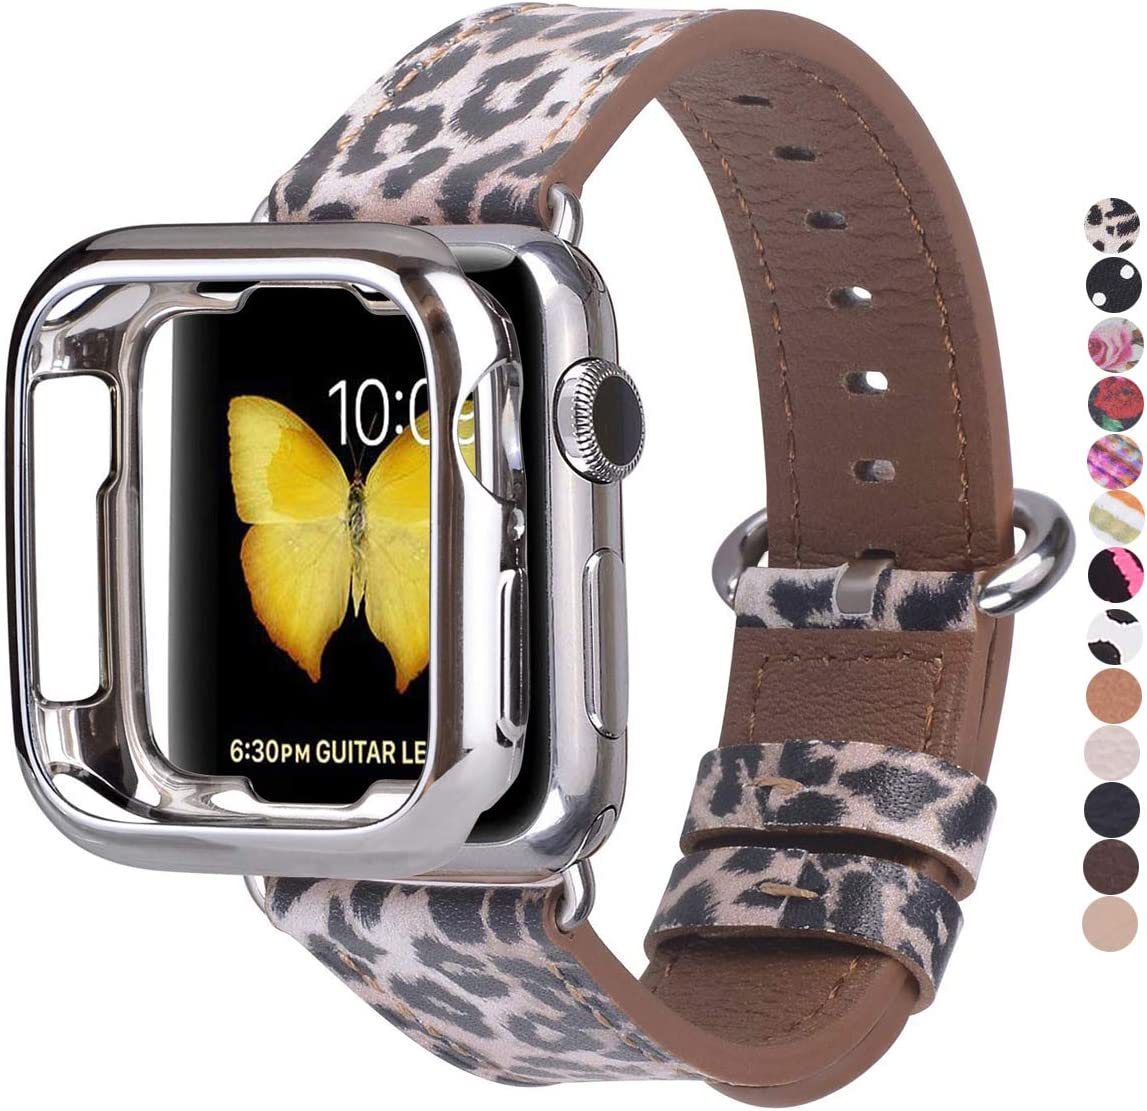 JSGJMY Compatible with Apple Watch Band 38mm 40mm with Case,Women Genuine Leather Strap with Silver Adapter and Buckle for iwatch Series 5/4/3/2/1, Leopard Printed